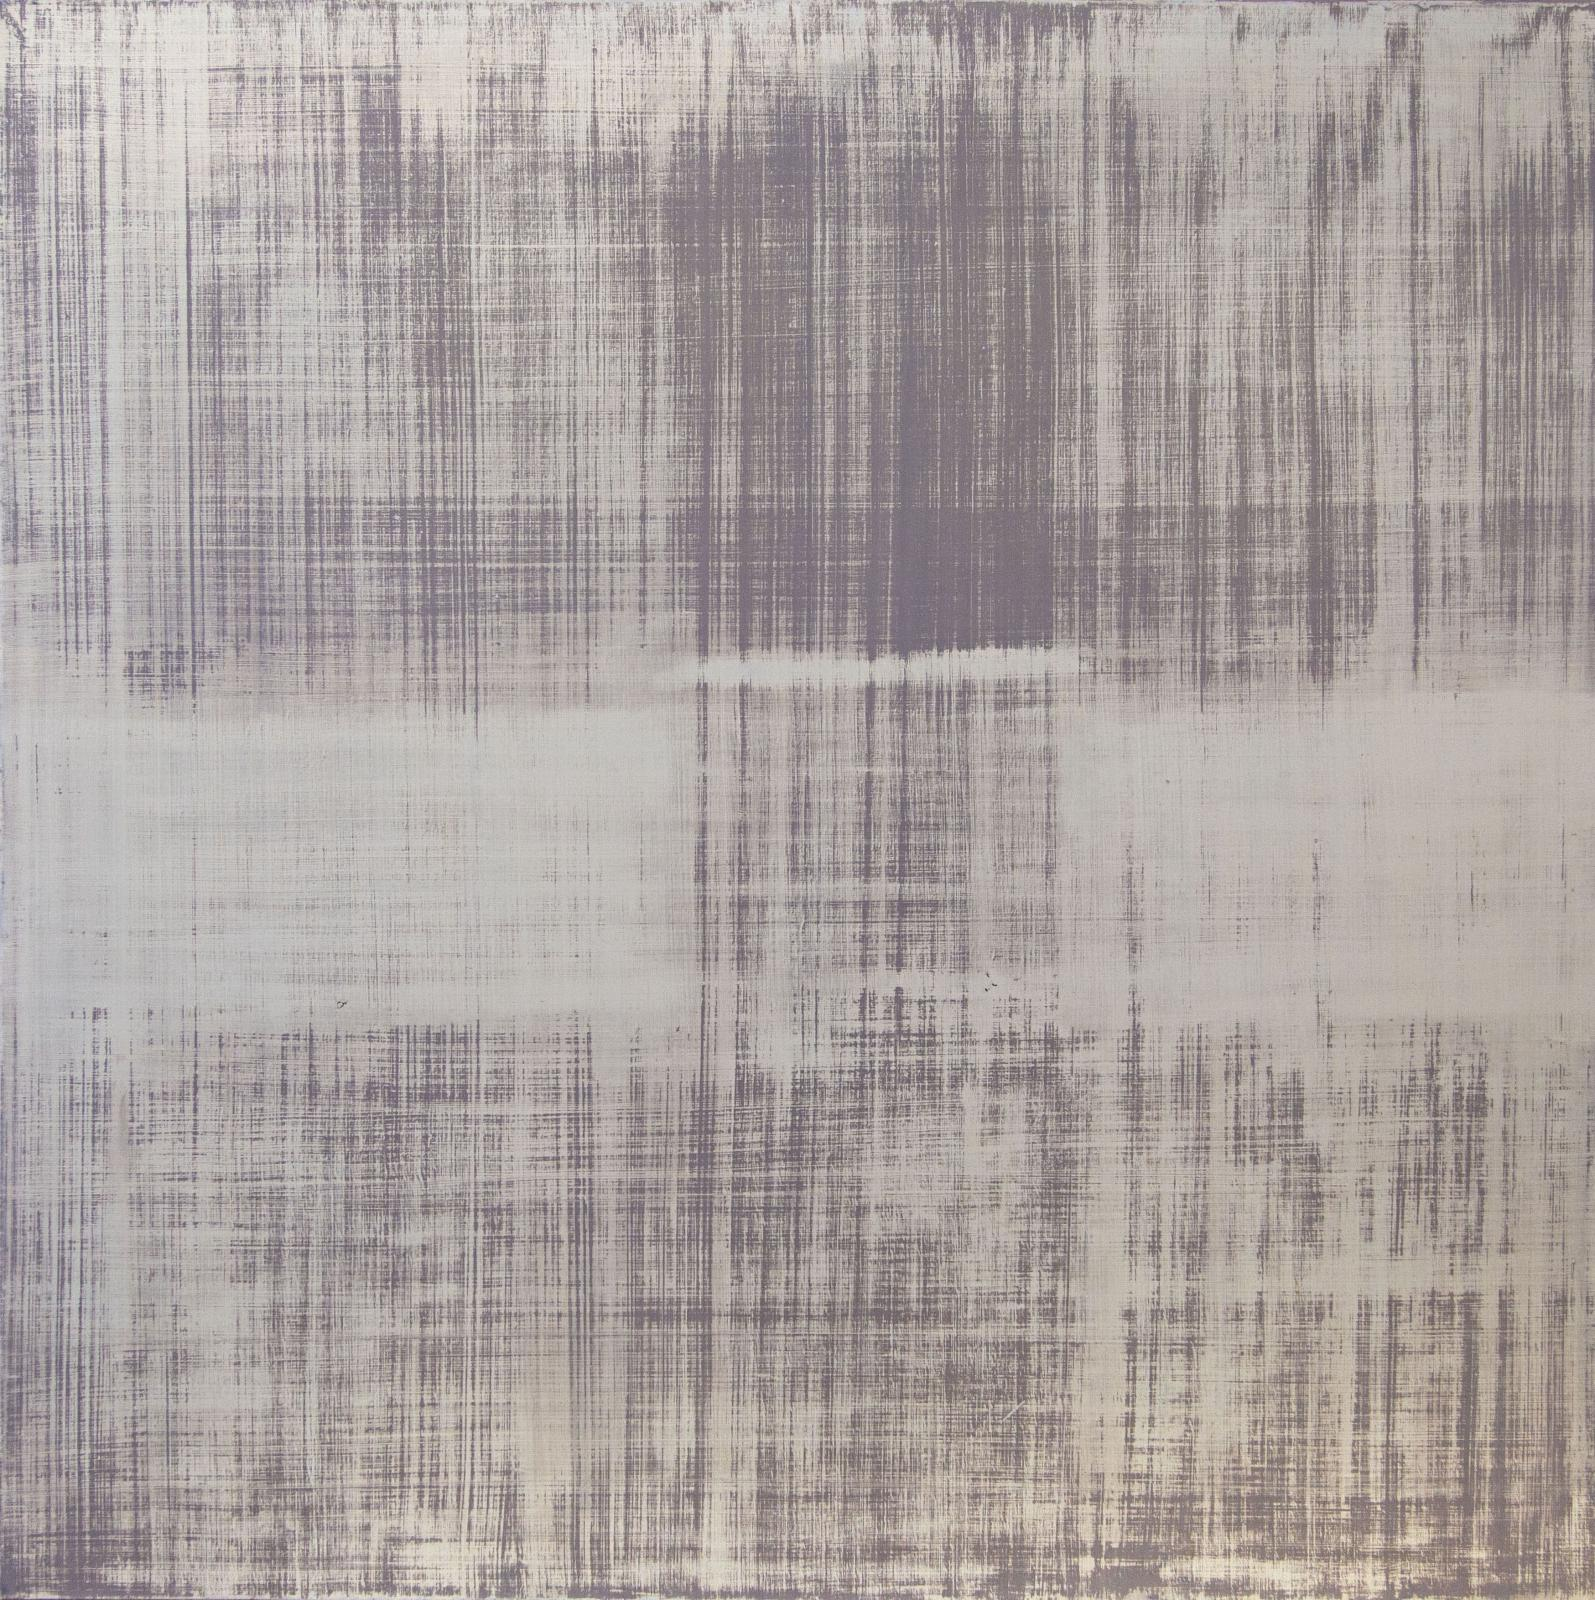 an abstract painting in cool tones